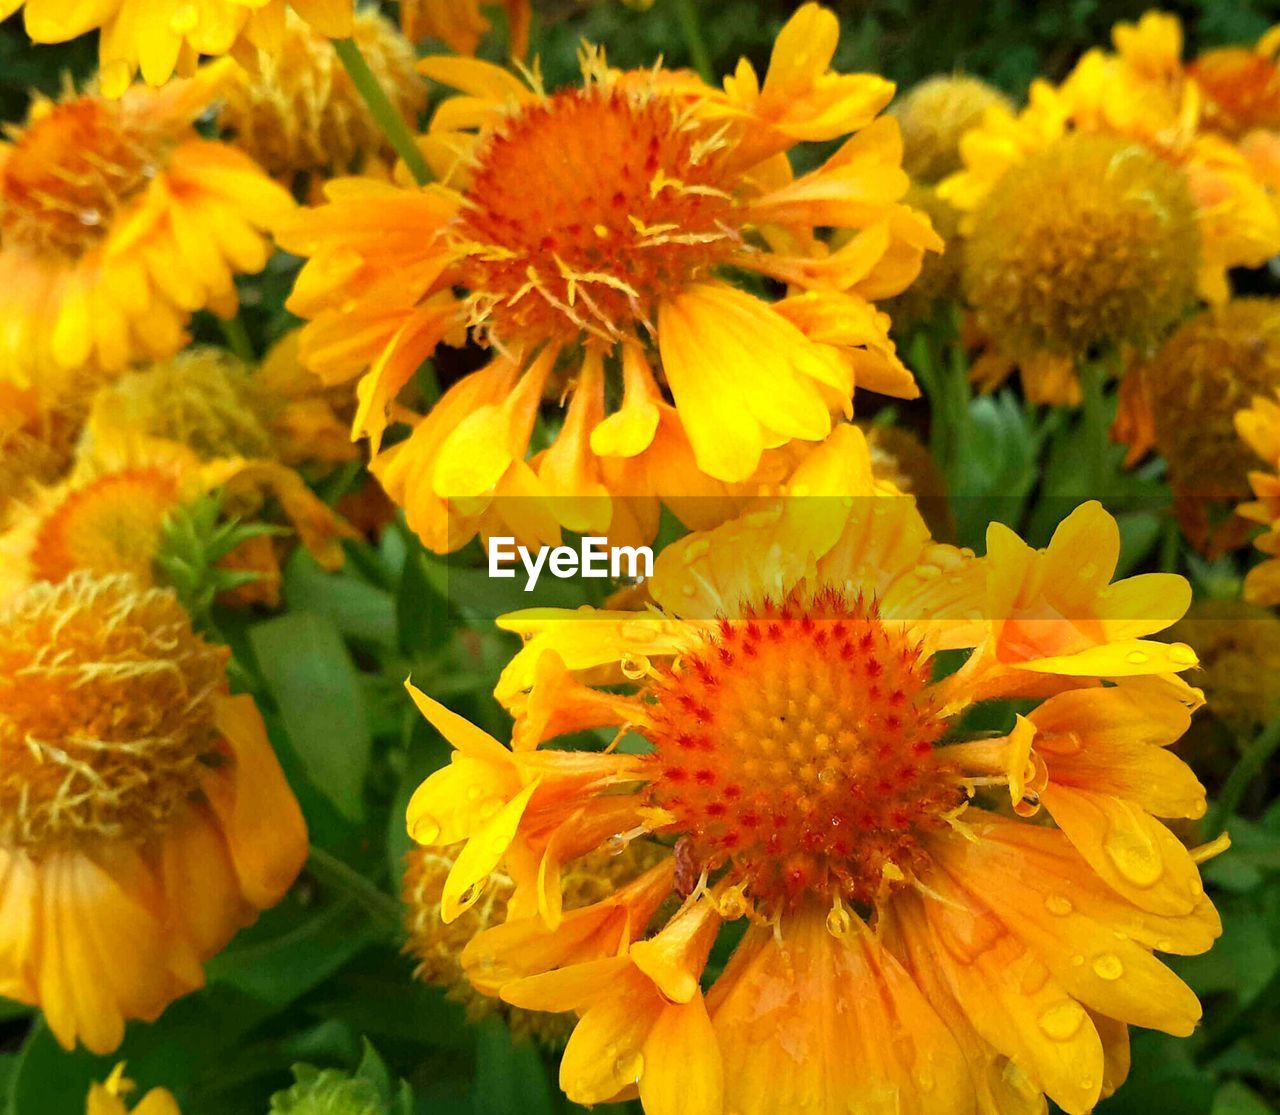 flower, petal, flower head, fragility, beauty in nature, freshness, yellow, nature, growth, plant, close-up, orange color, pollen, no people, blooming, springtime, day, outdoors